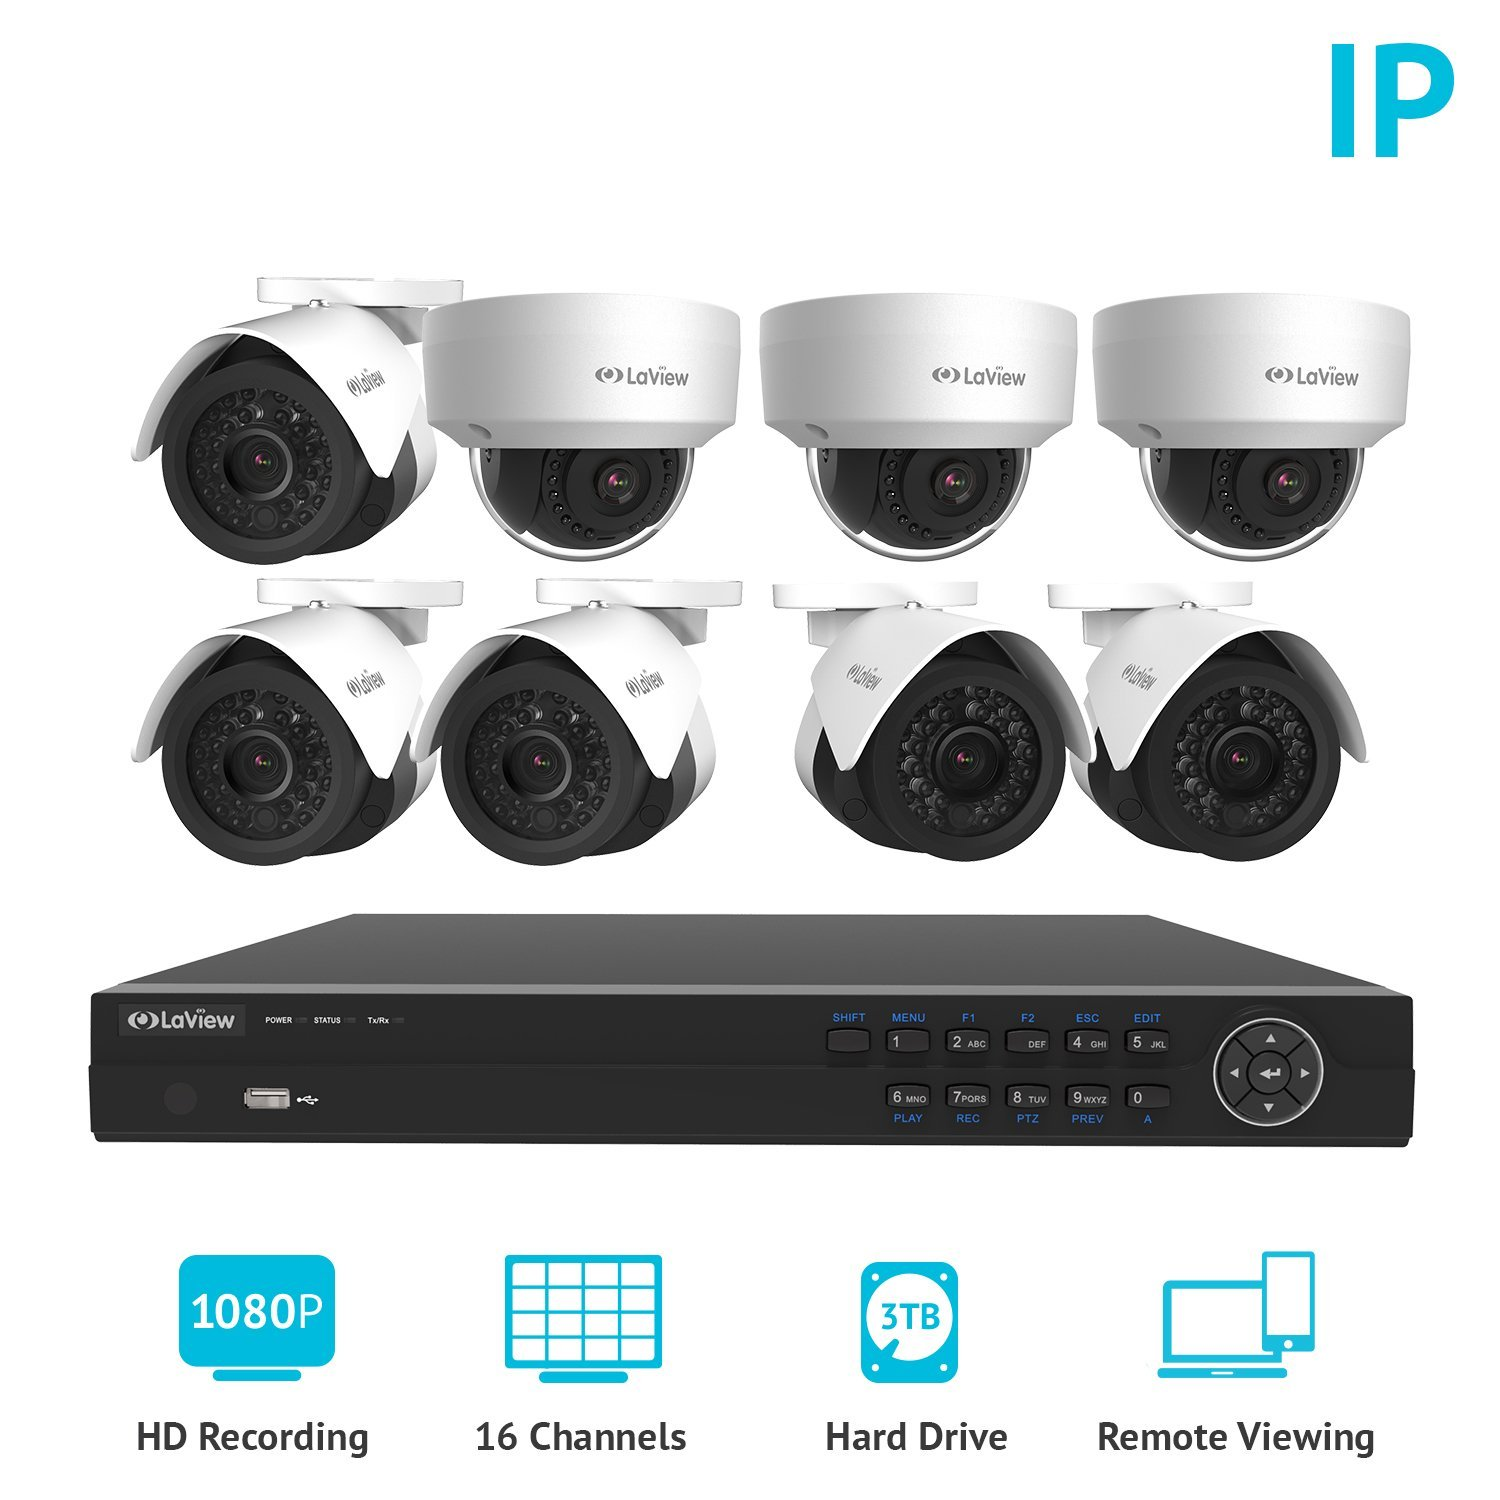 LaView 16 Channel HD 1080P NVR Security System W/ 5 Bullet & 3 Dome 2MP IP POE indoor/outdoor Surveillance Cameras, 3TB